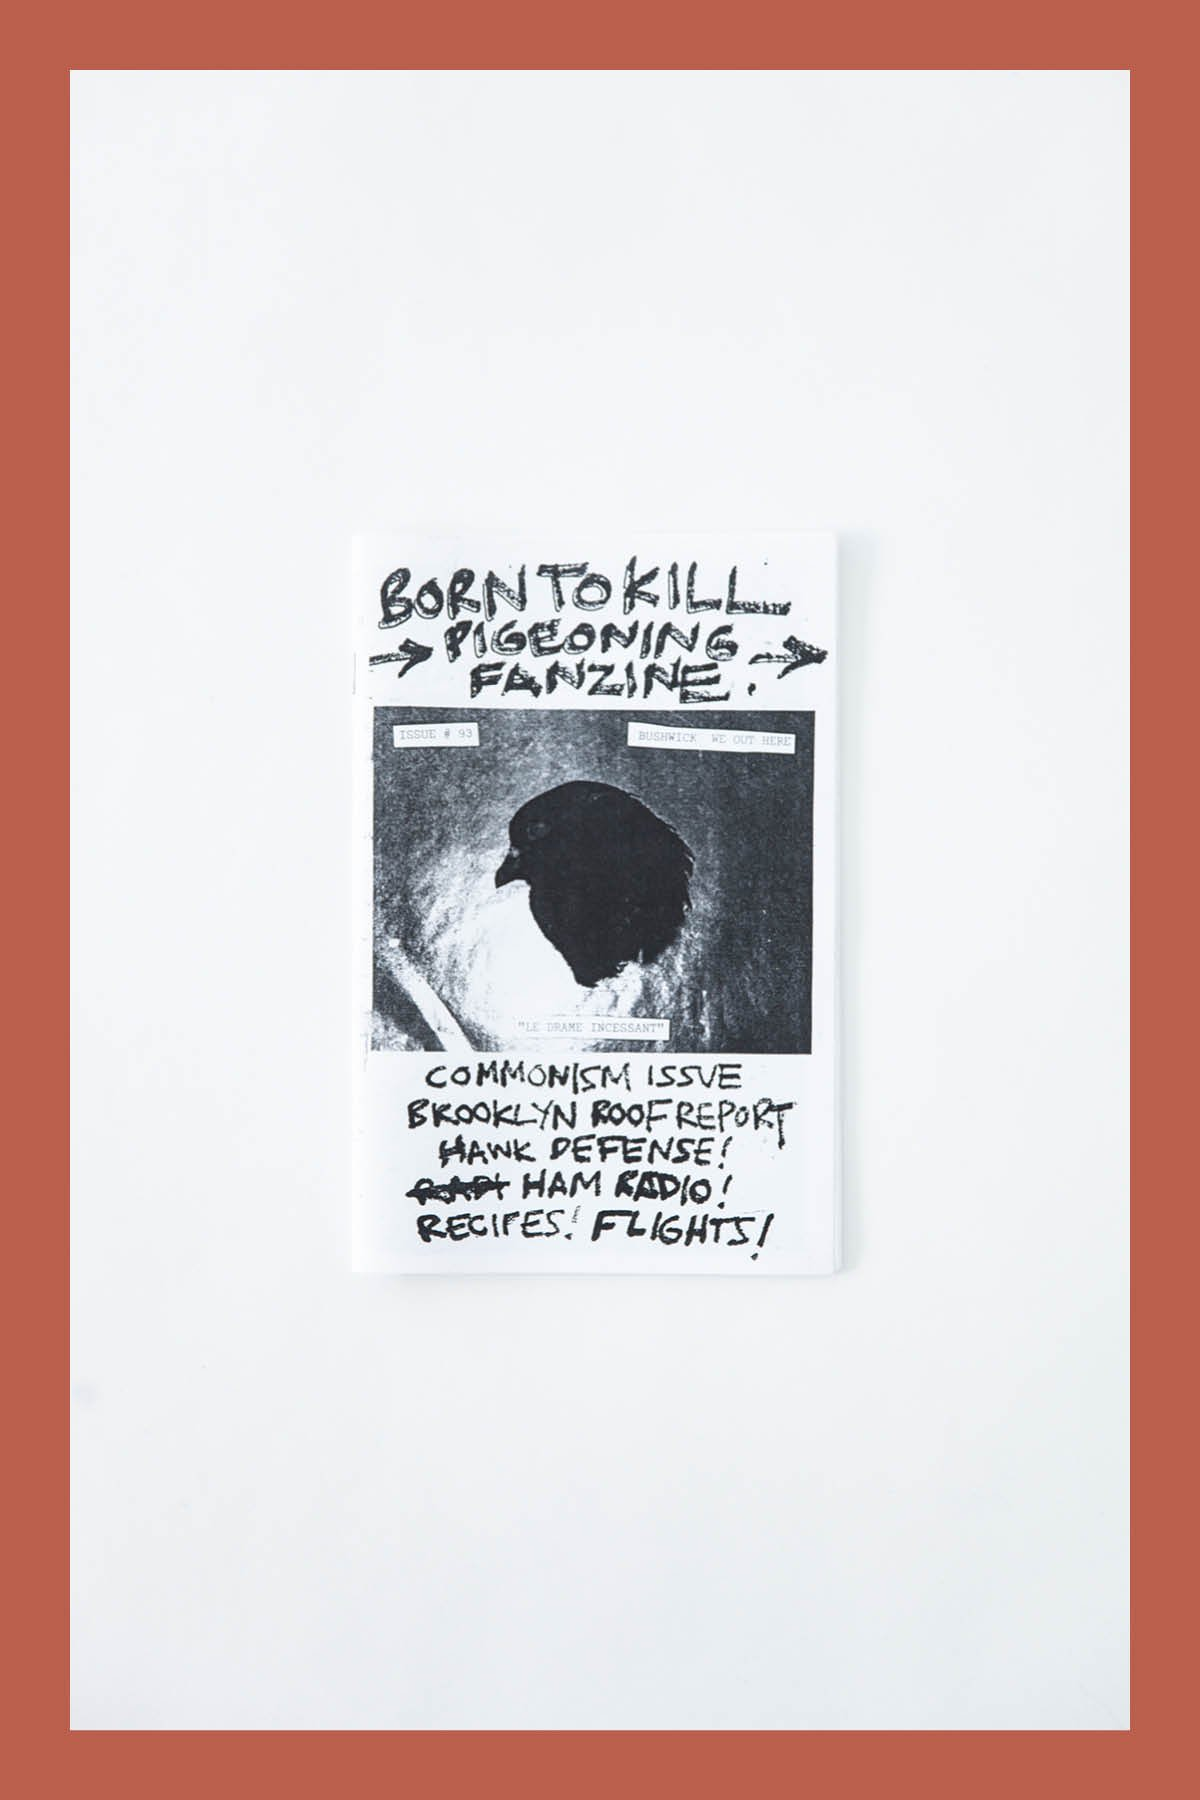 Pat McCarthy / BORN TO KILL ZINE #93